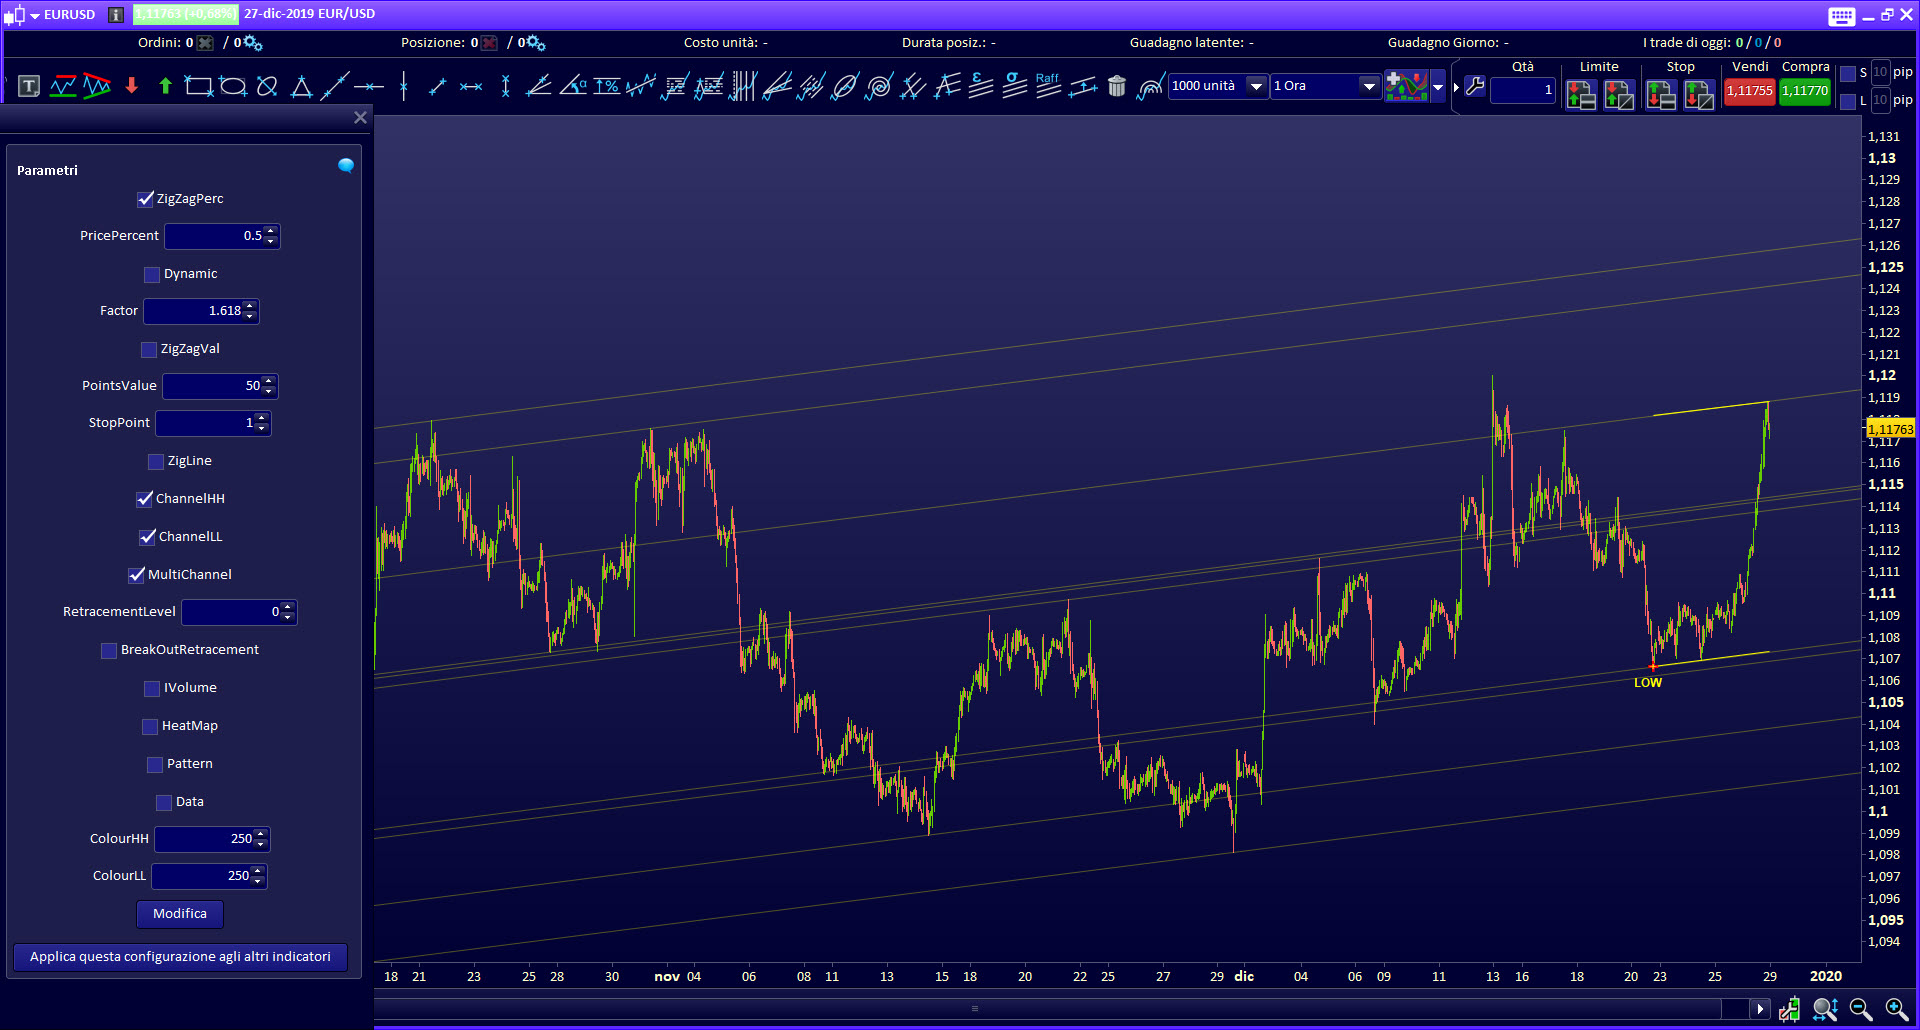 Multy Channel trading indicator